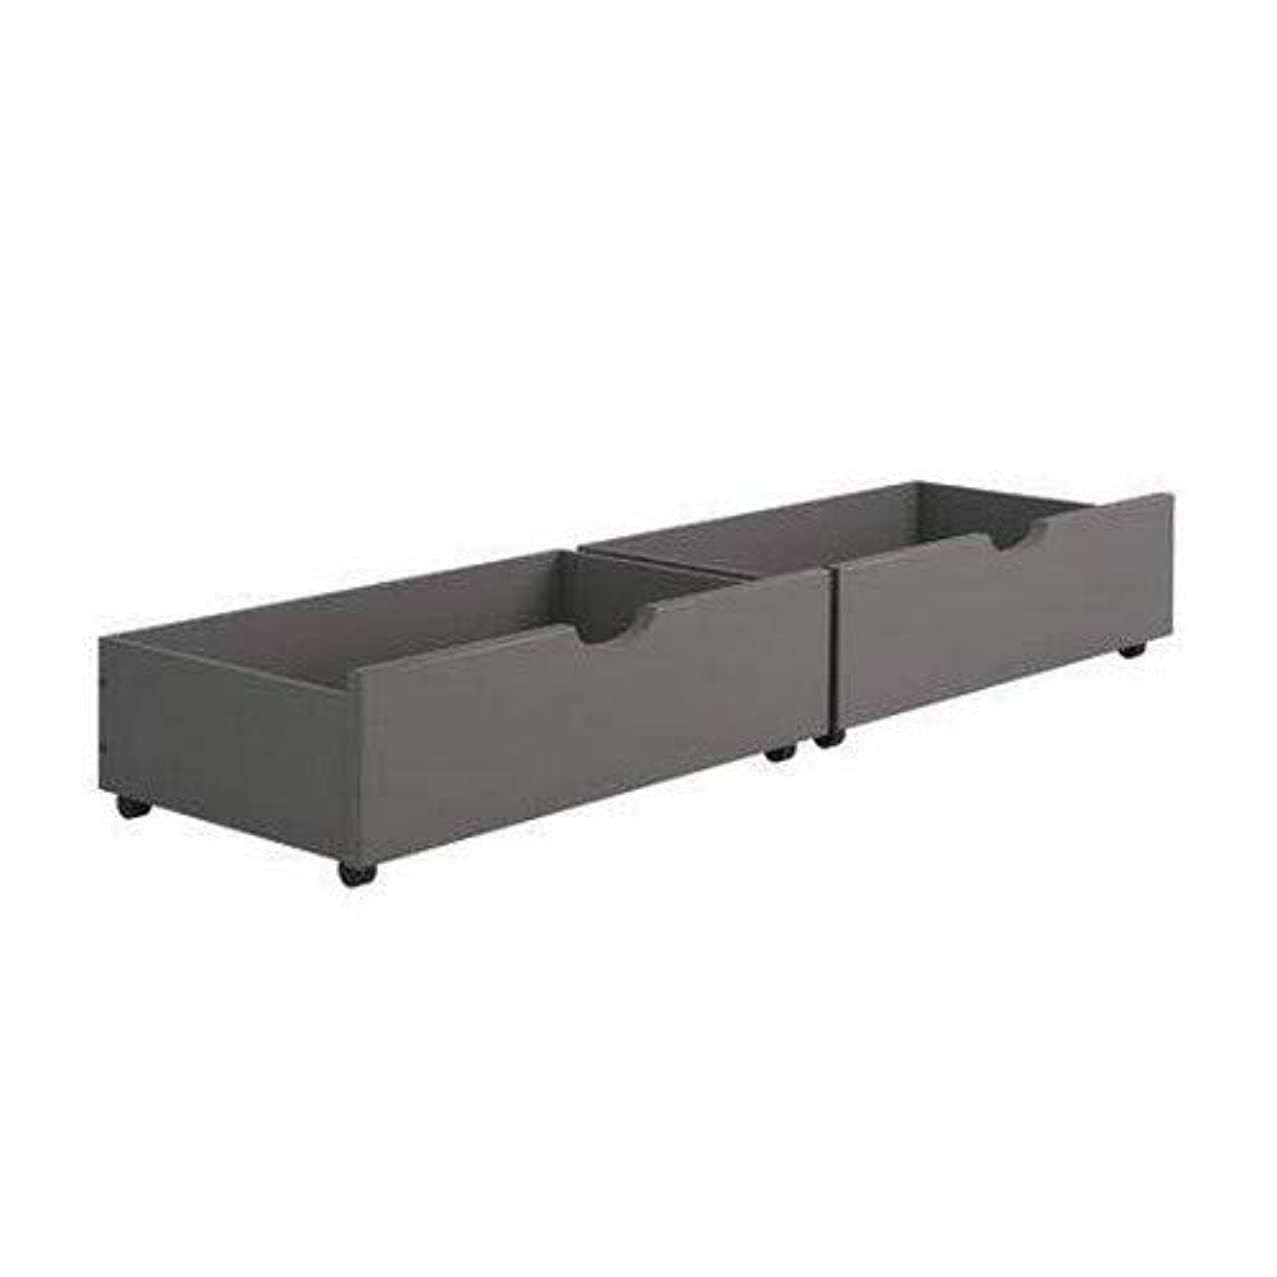 Donco Kids 505-DG Dual Under Bed Drawer, One Size, Dark Grey